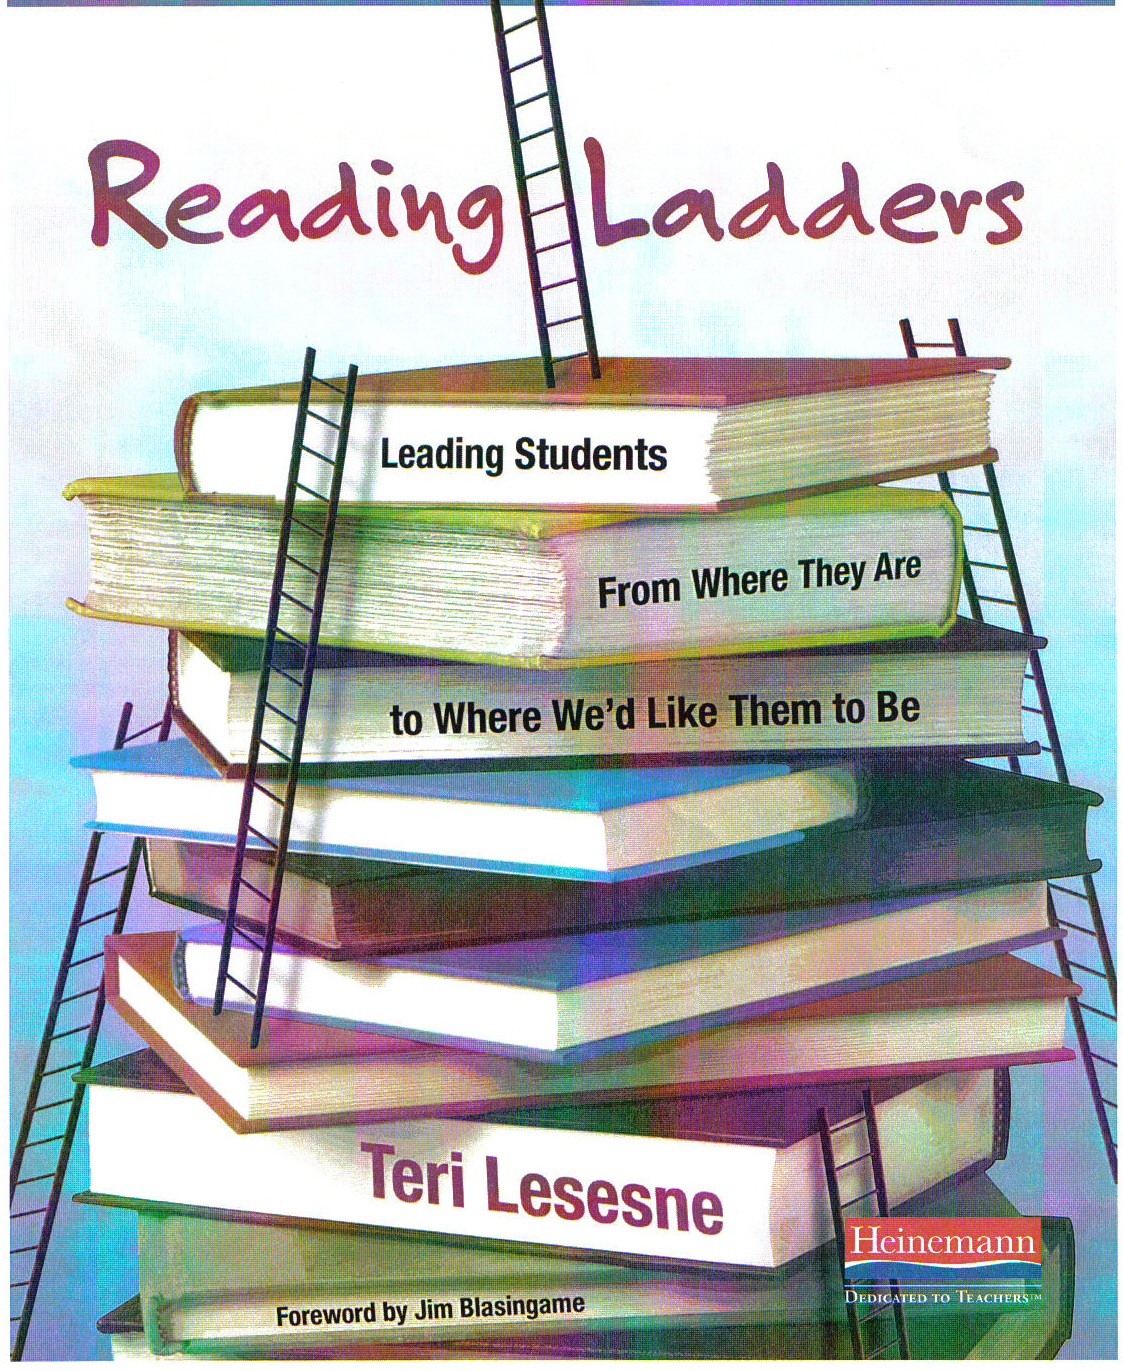 Reading Ladders / WELCOME TO THE READING LADDERS WIKI